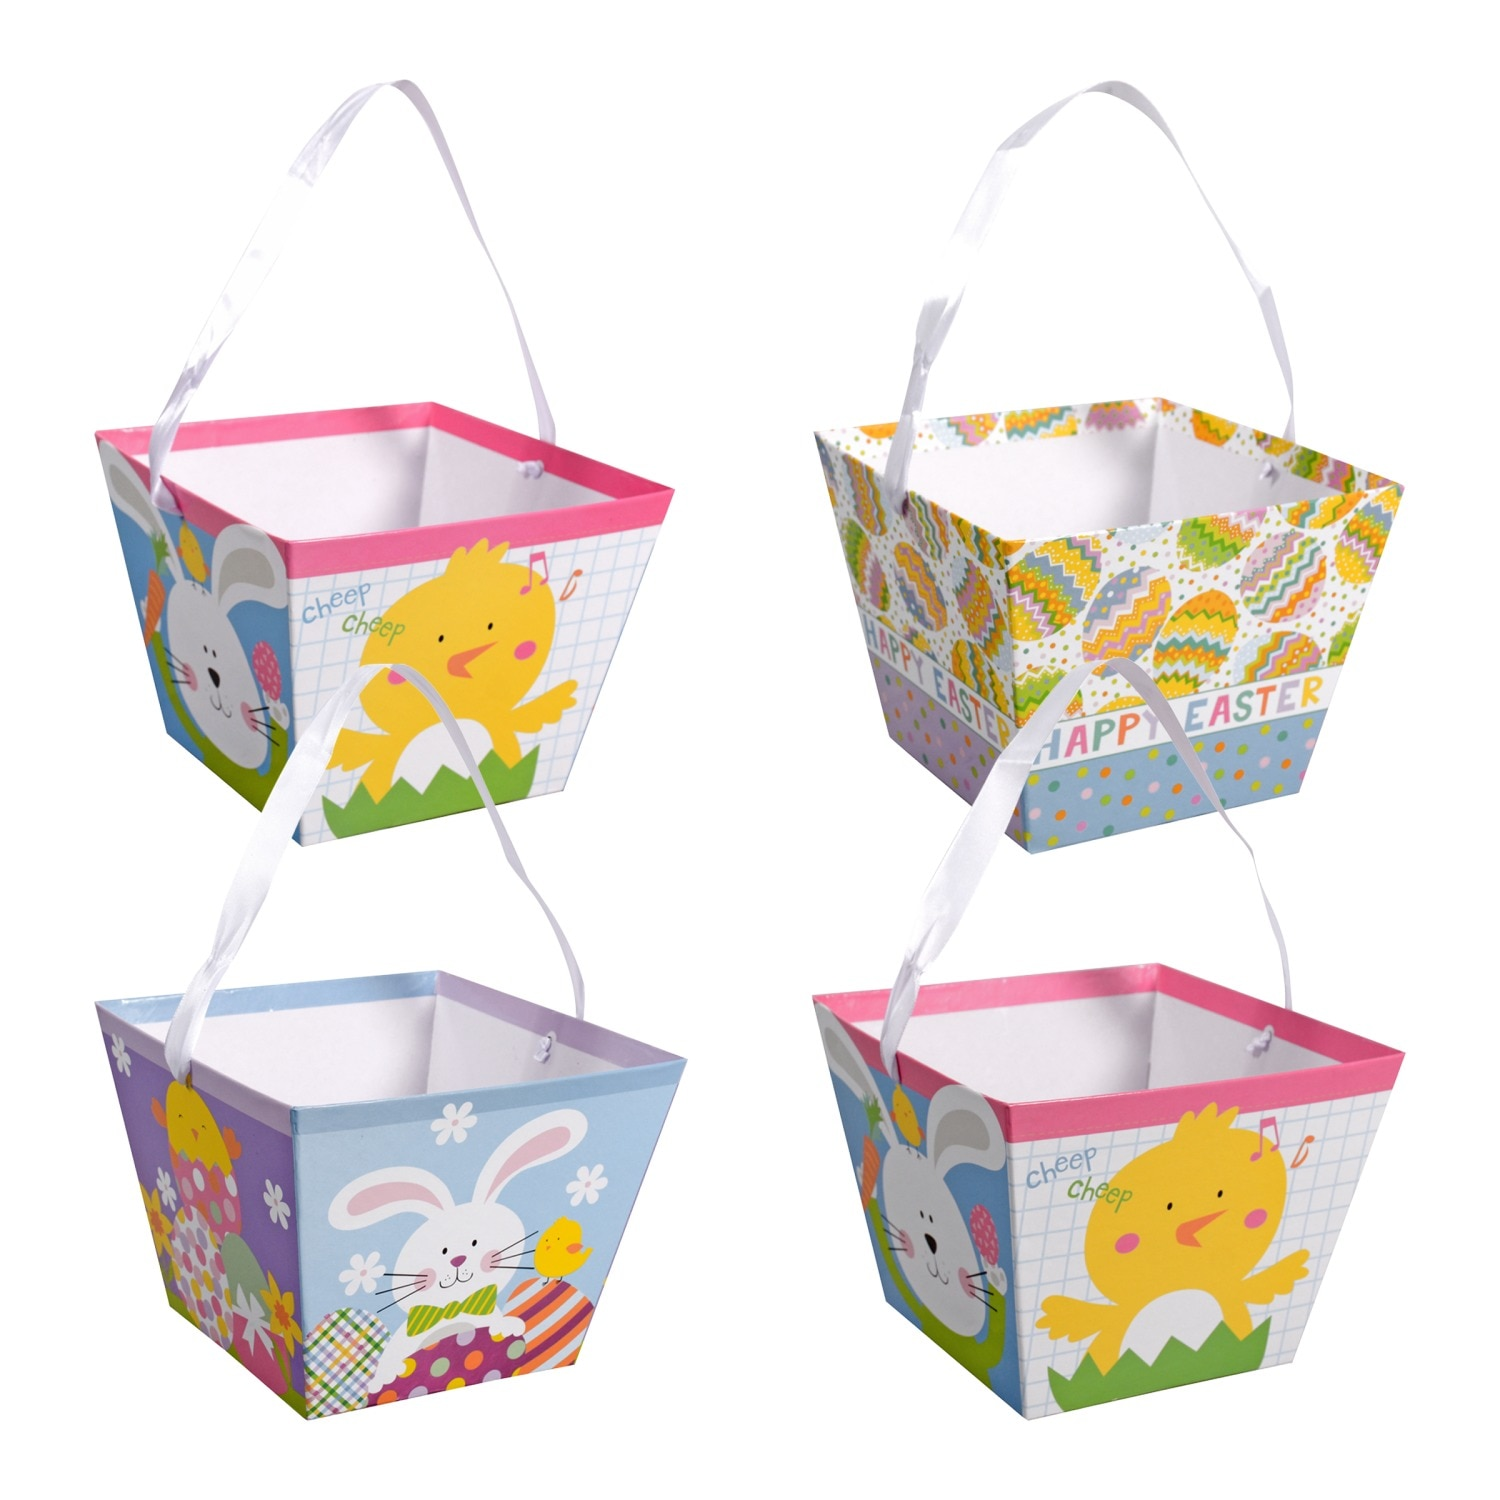 Square Paper Printed Easter Pails with Handles